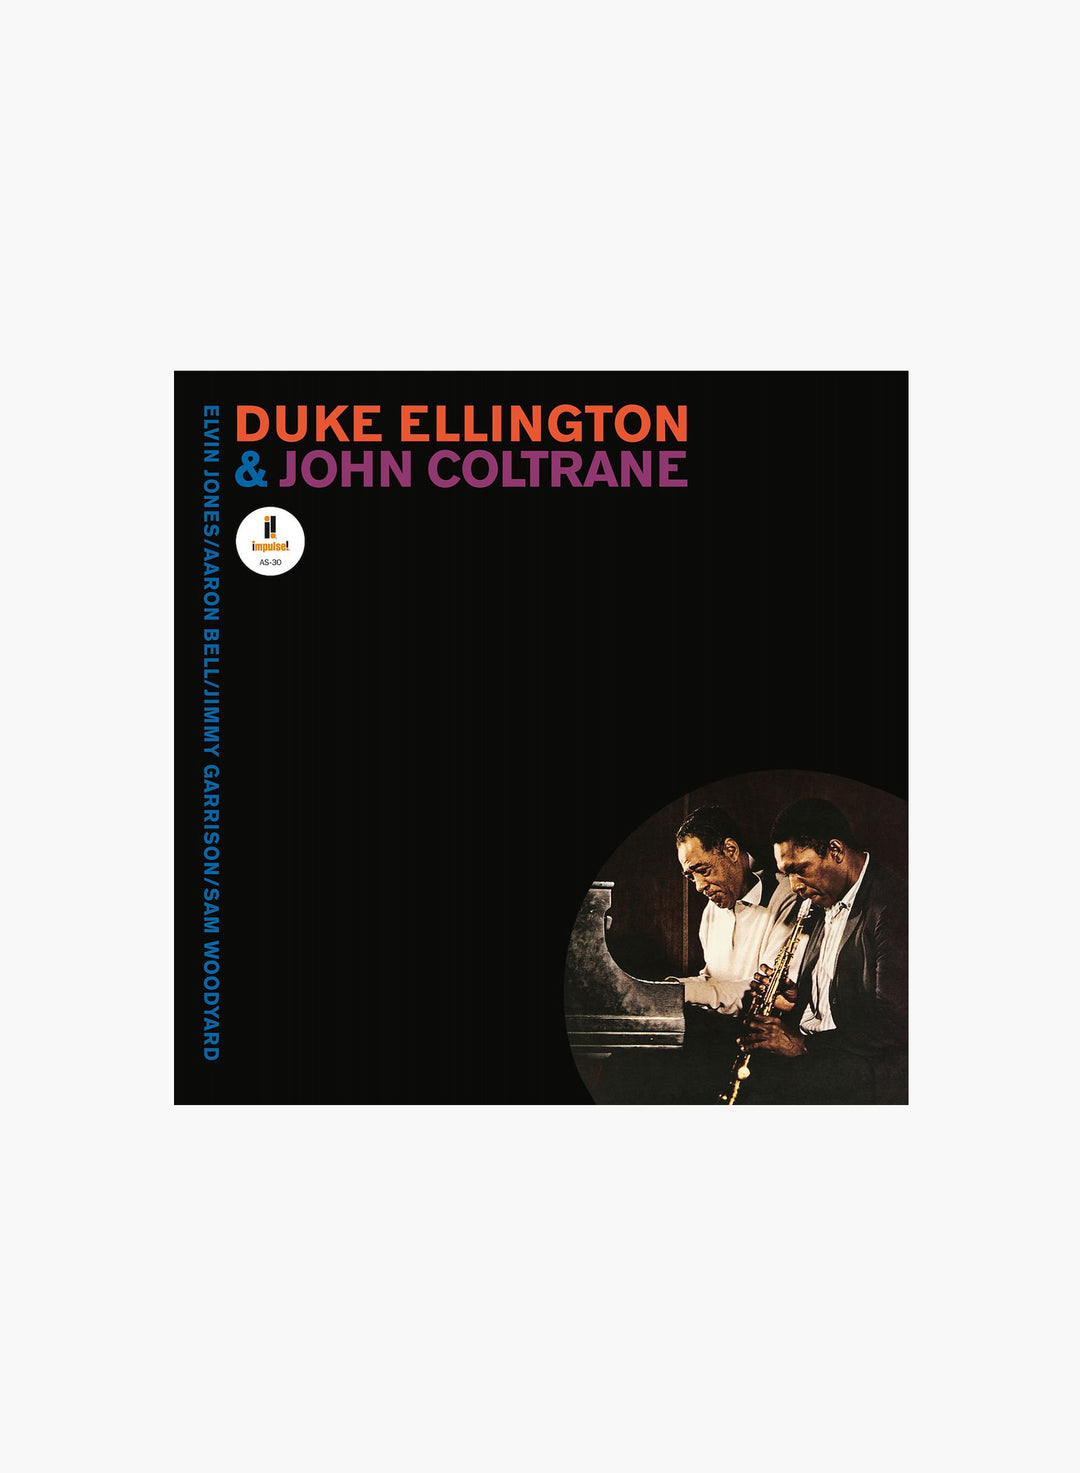 Duke Ellington & John Coltrane LP